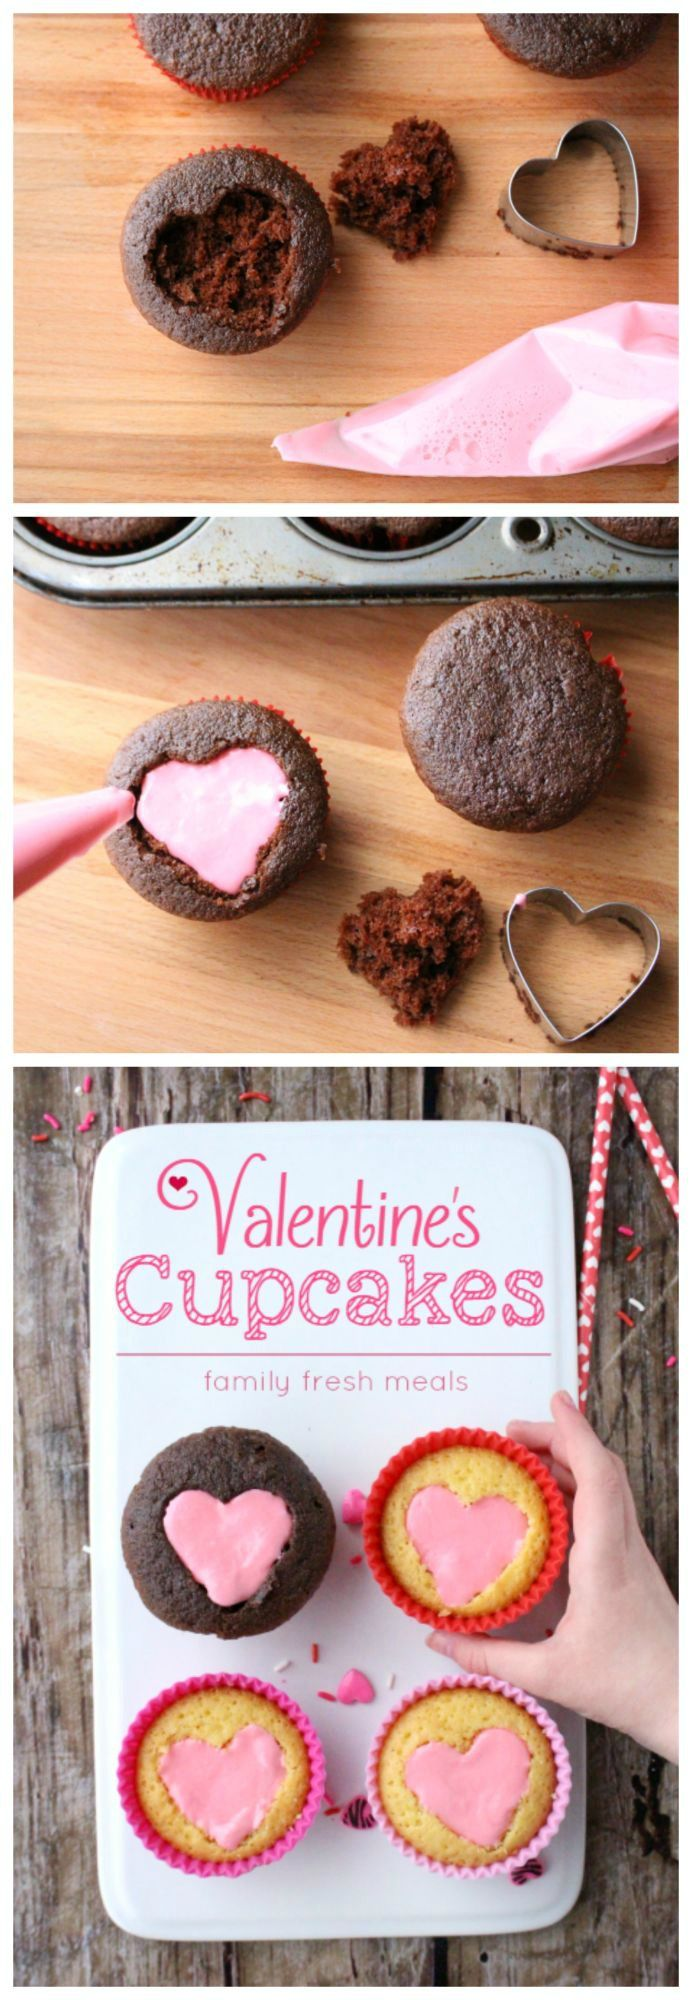 Easy Heart Valentine Cupcakes Recipe - Perfect for Valentine's Day! FamilyFreshMeals.com